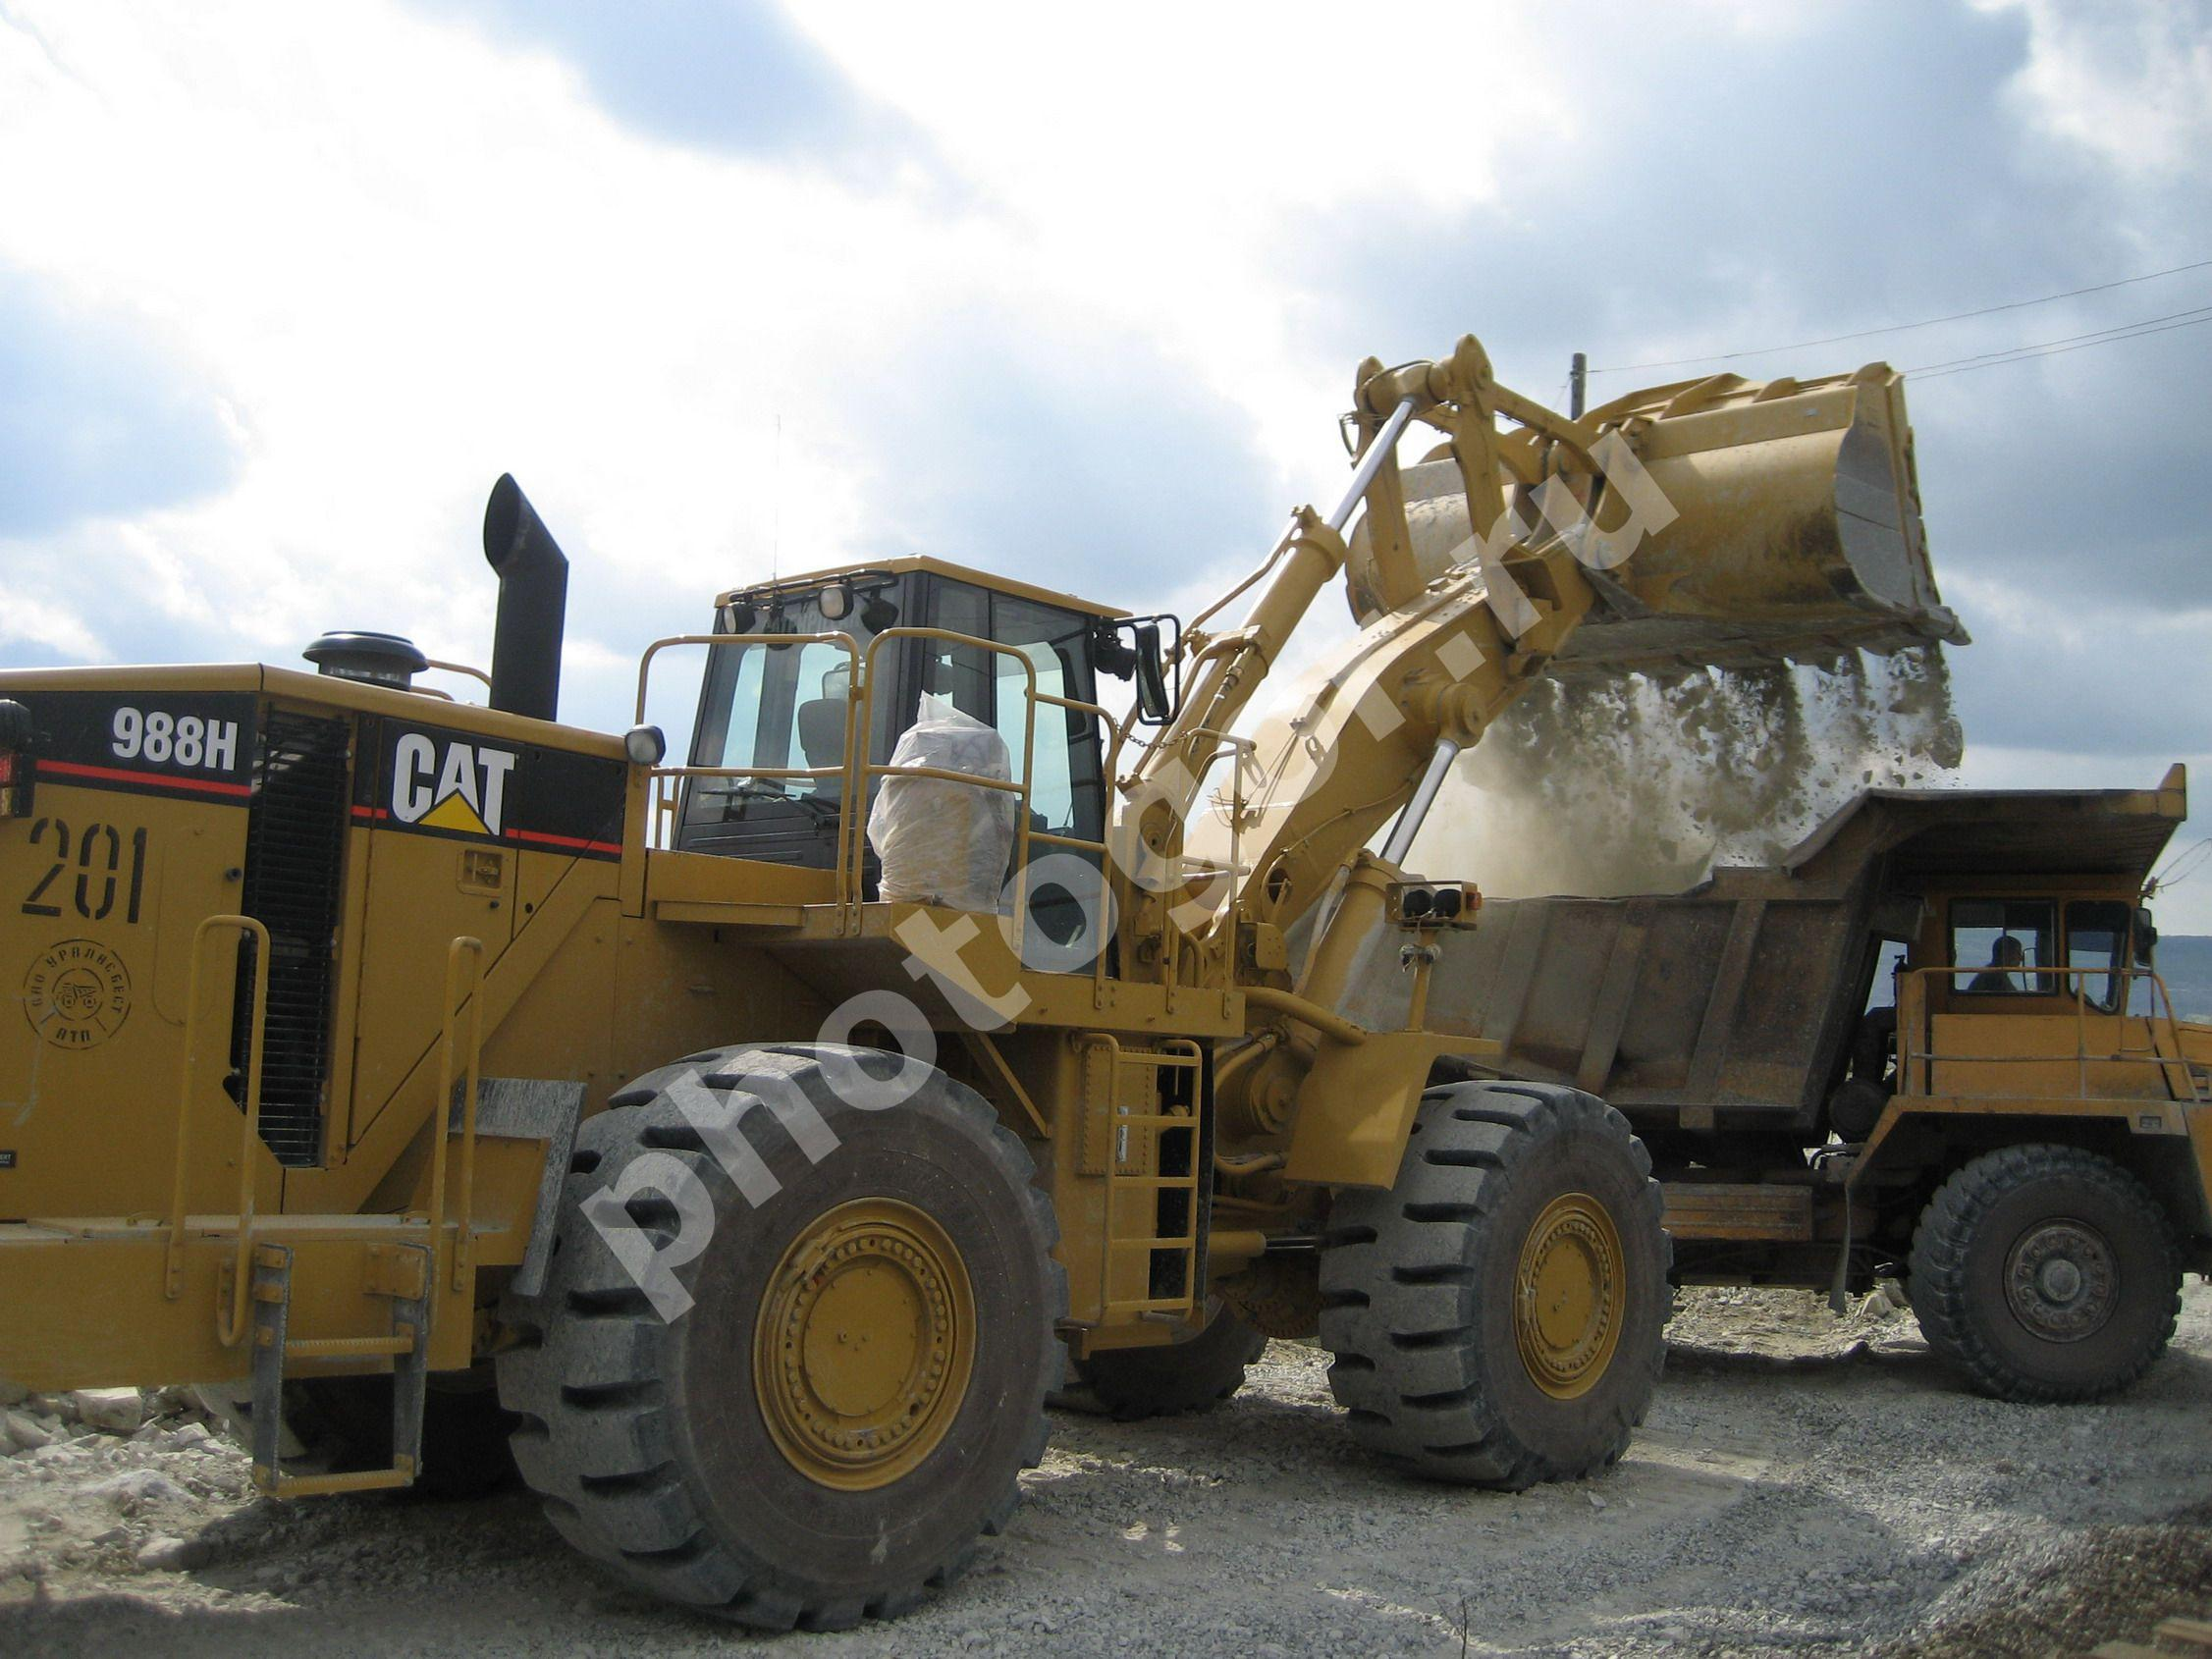 Caterpillar 988 photo - 3